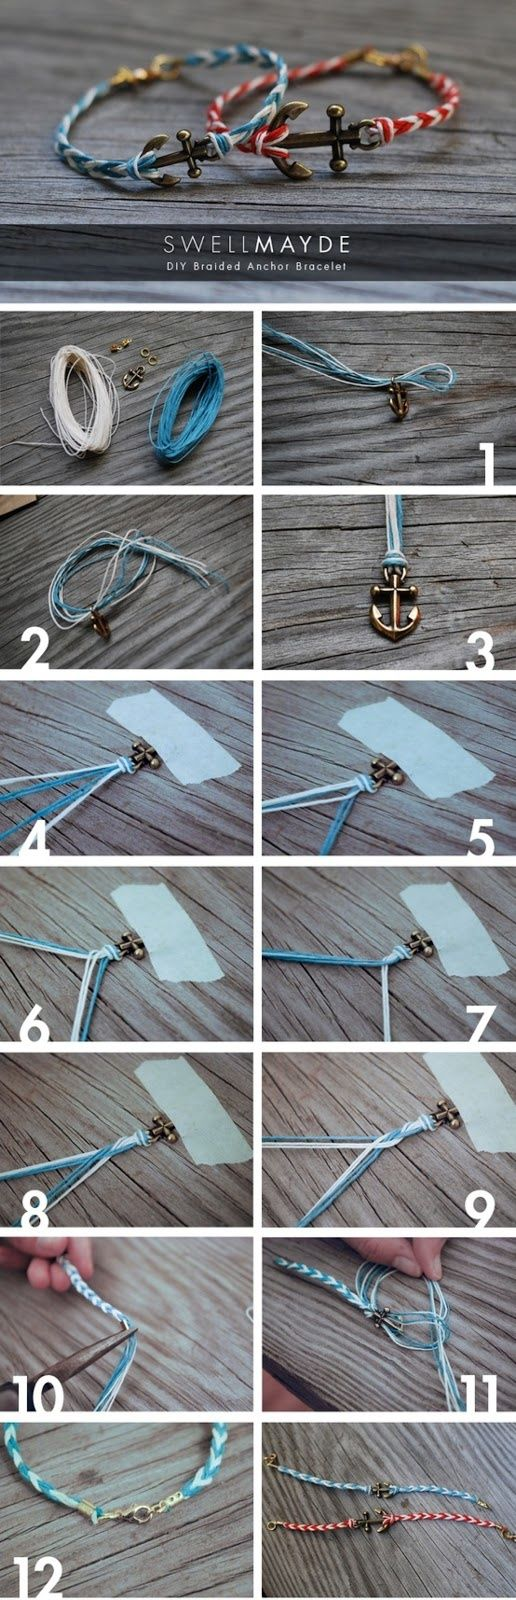 20 Great DIY Bracelets and Rings Tutorials | Style Motivation